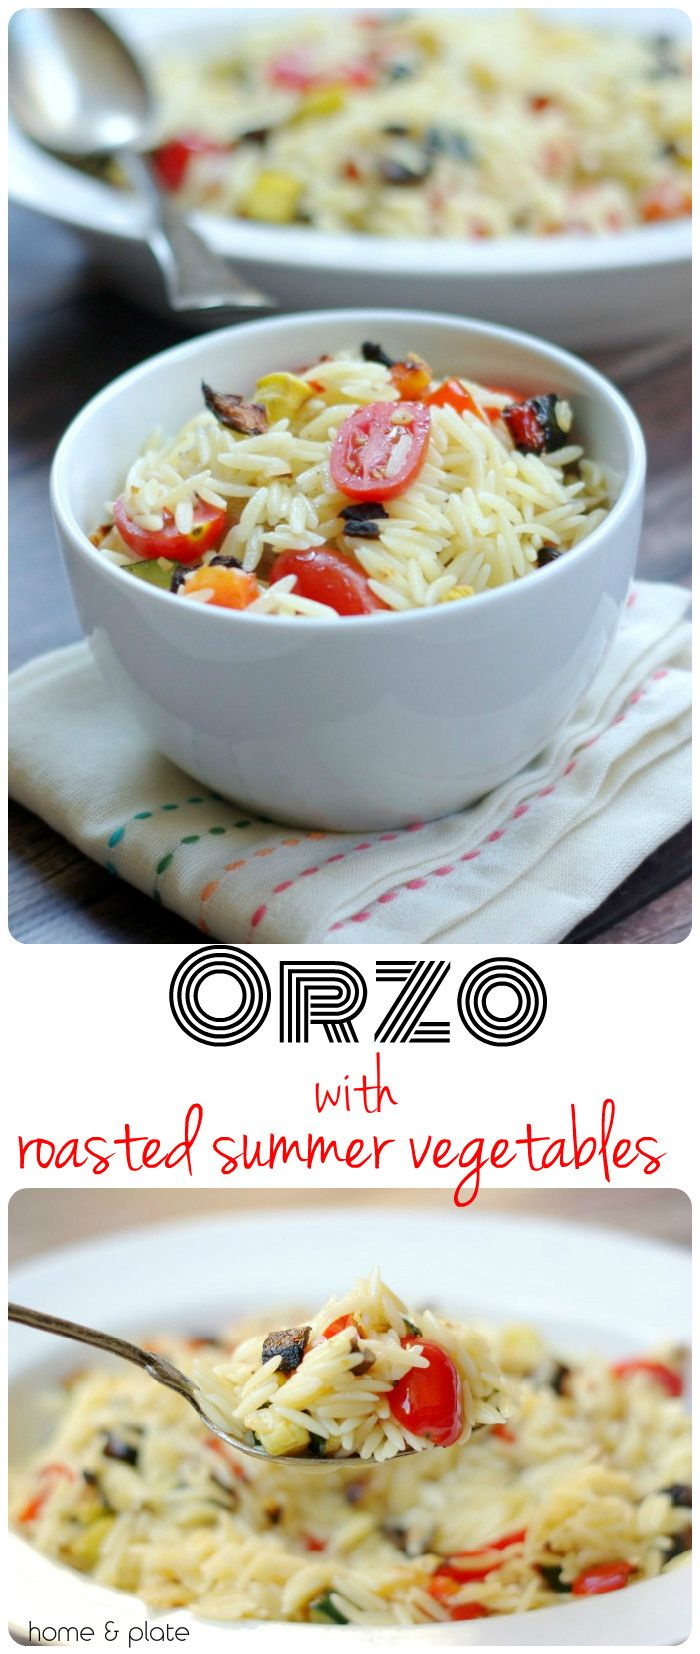 Orzo with Roasted Summer Vegetables | Home & Plate | www.homeandplate.com | This summer pasta side dish goes perfectly with anything off the grill.